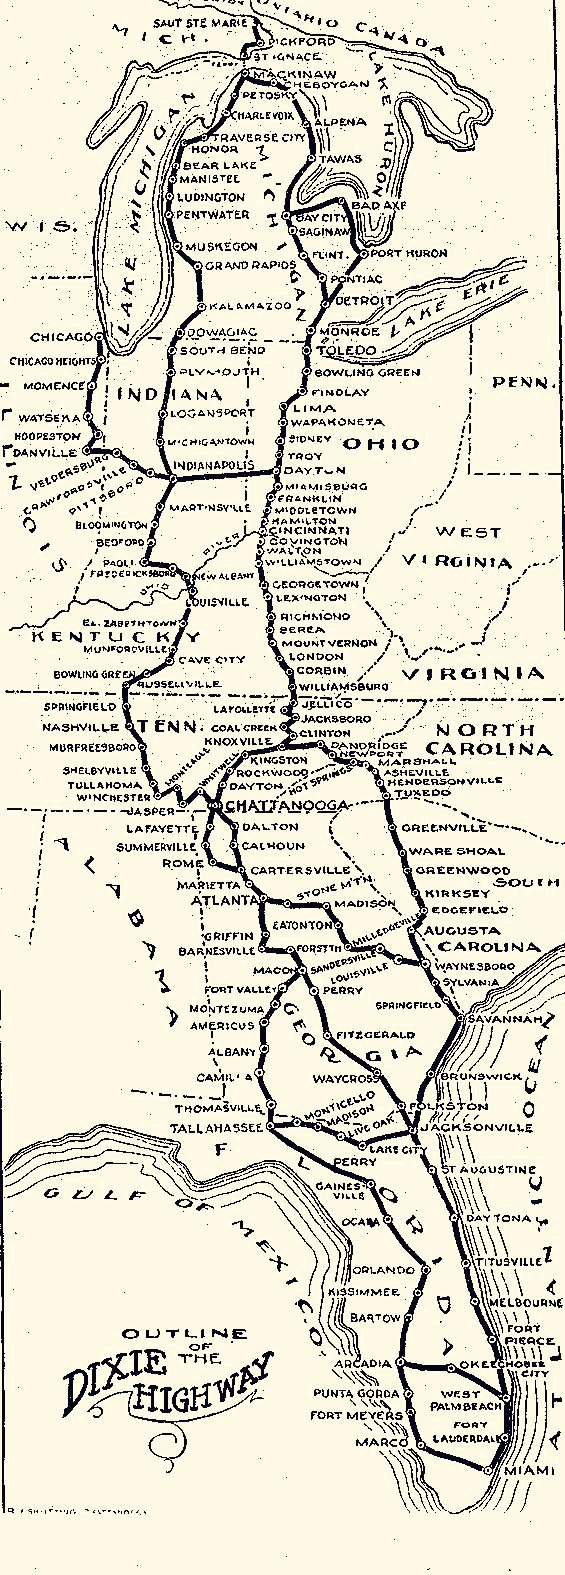 Map of the Dixie Highway